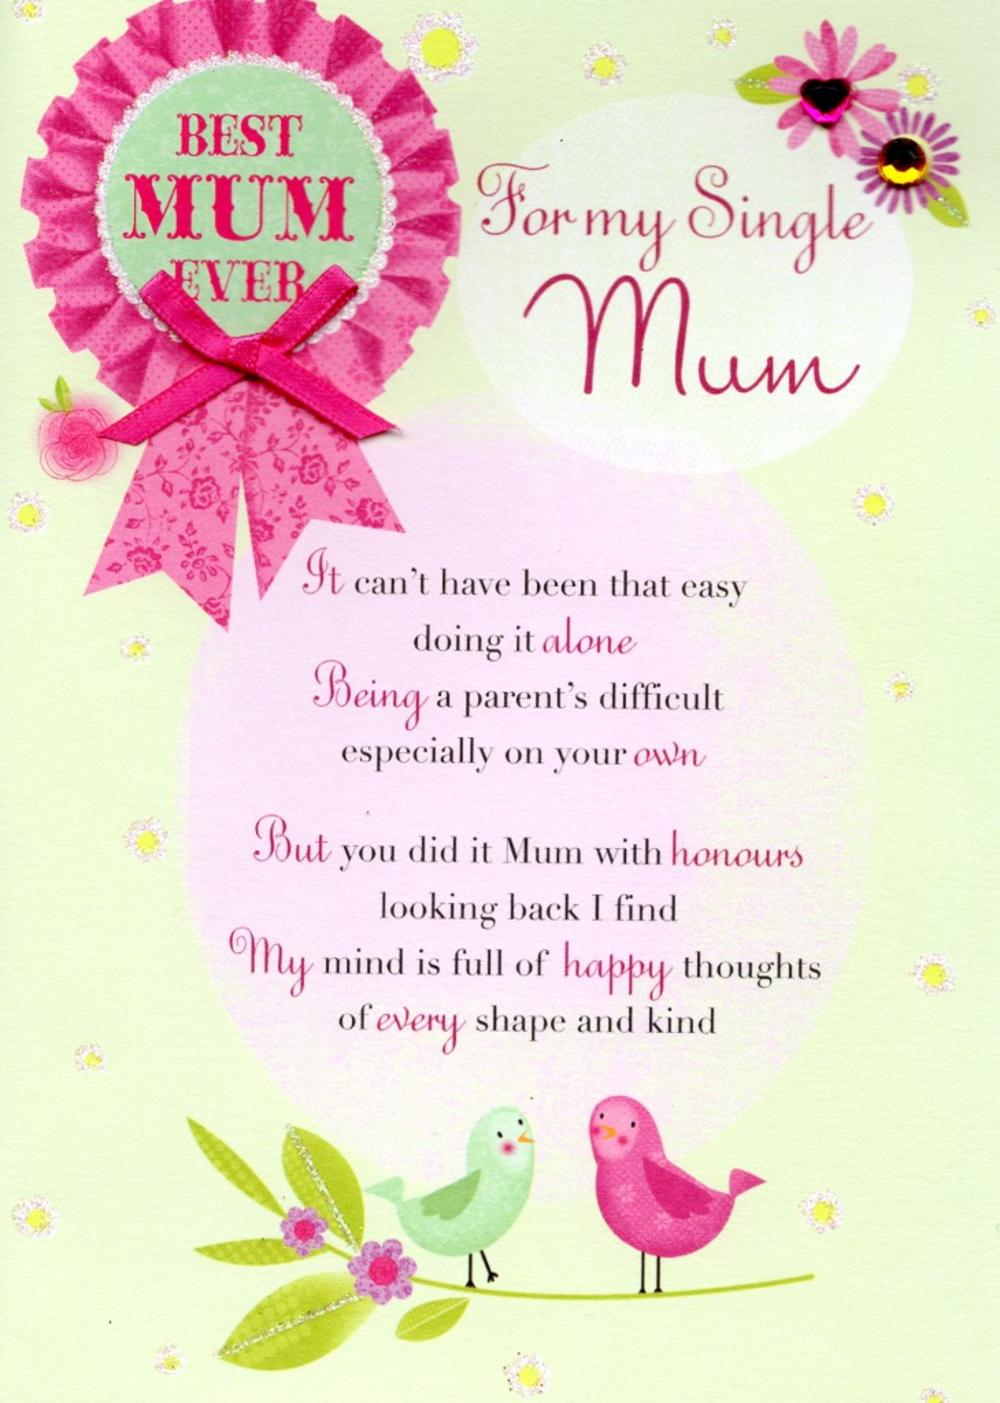 medium resolution of for my single mum mothers day card cards